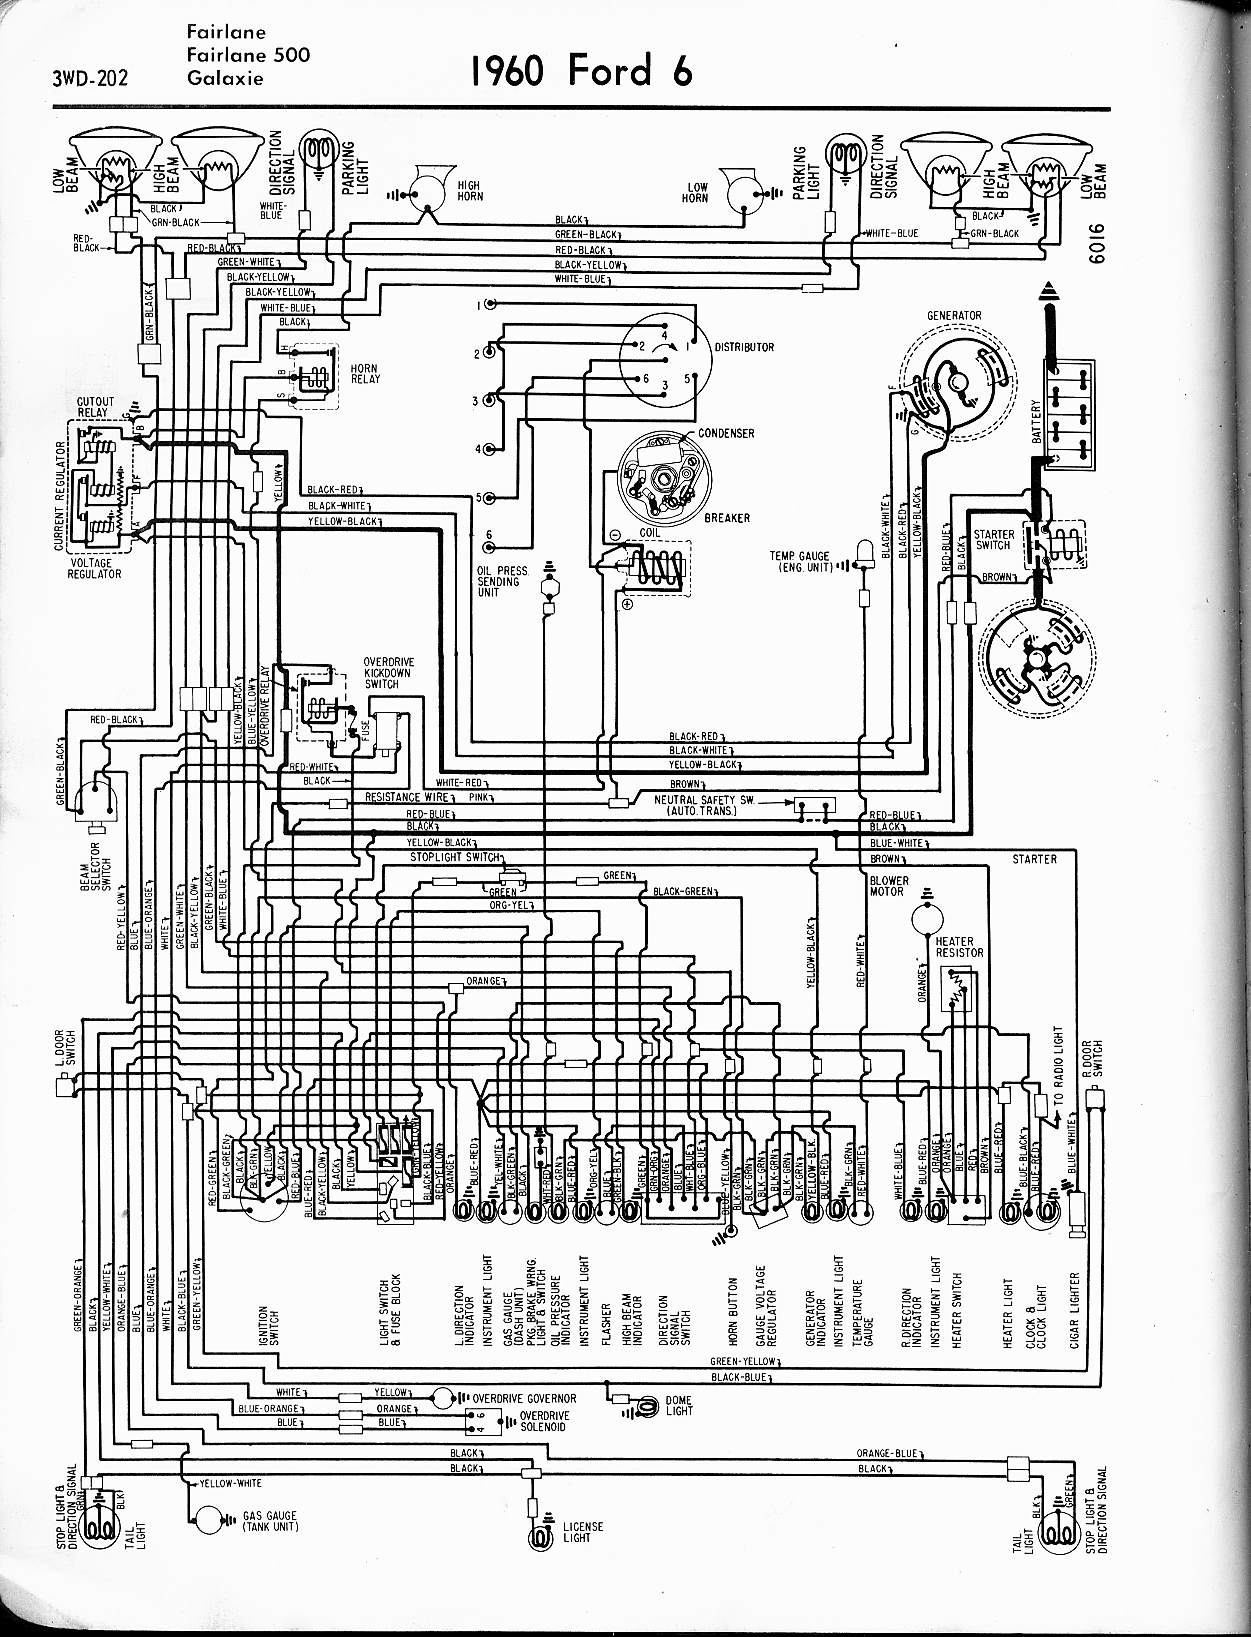 1954 Ford Wiring Diagram Detailed Schematics Library 2012 Jaguar Xf Engine